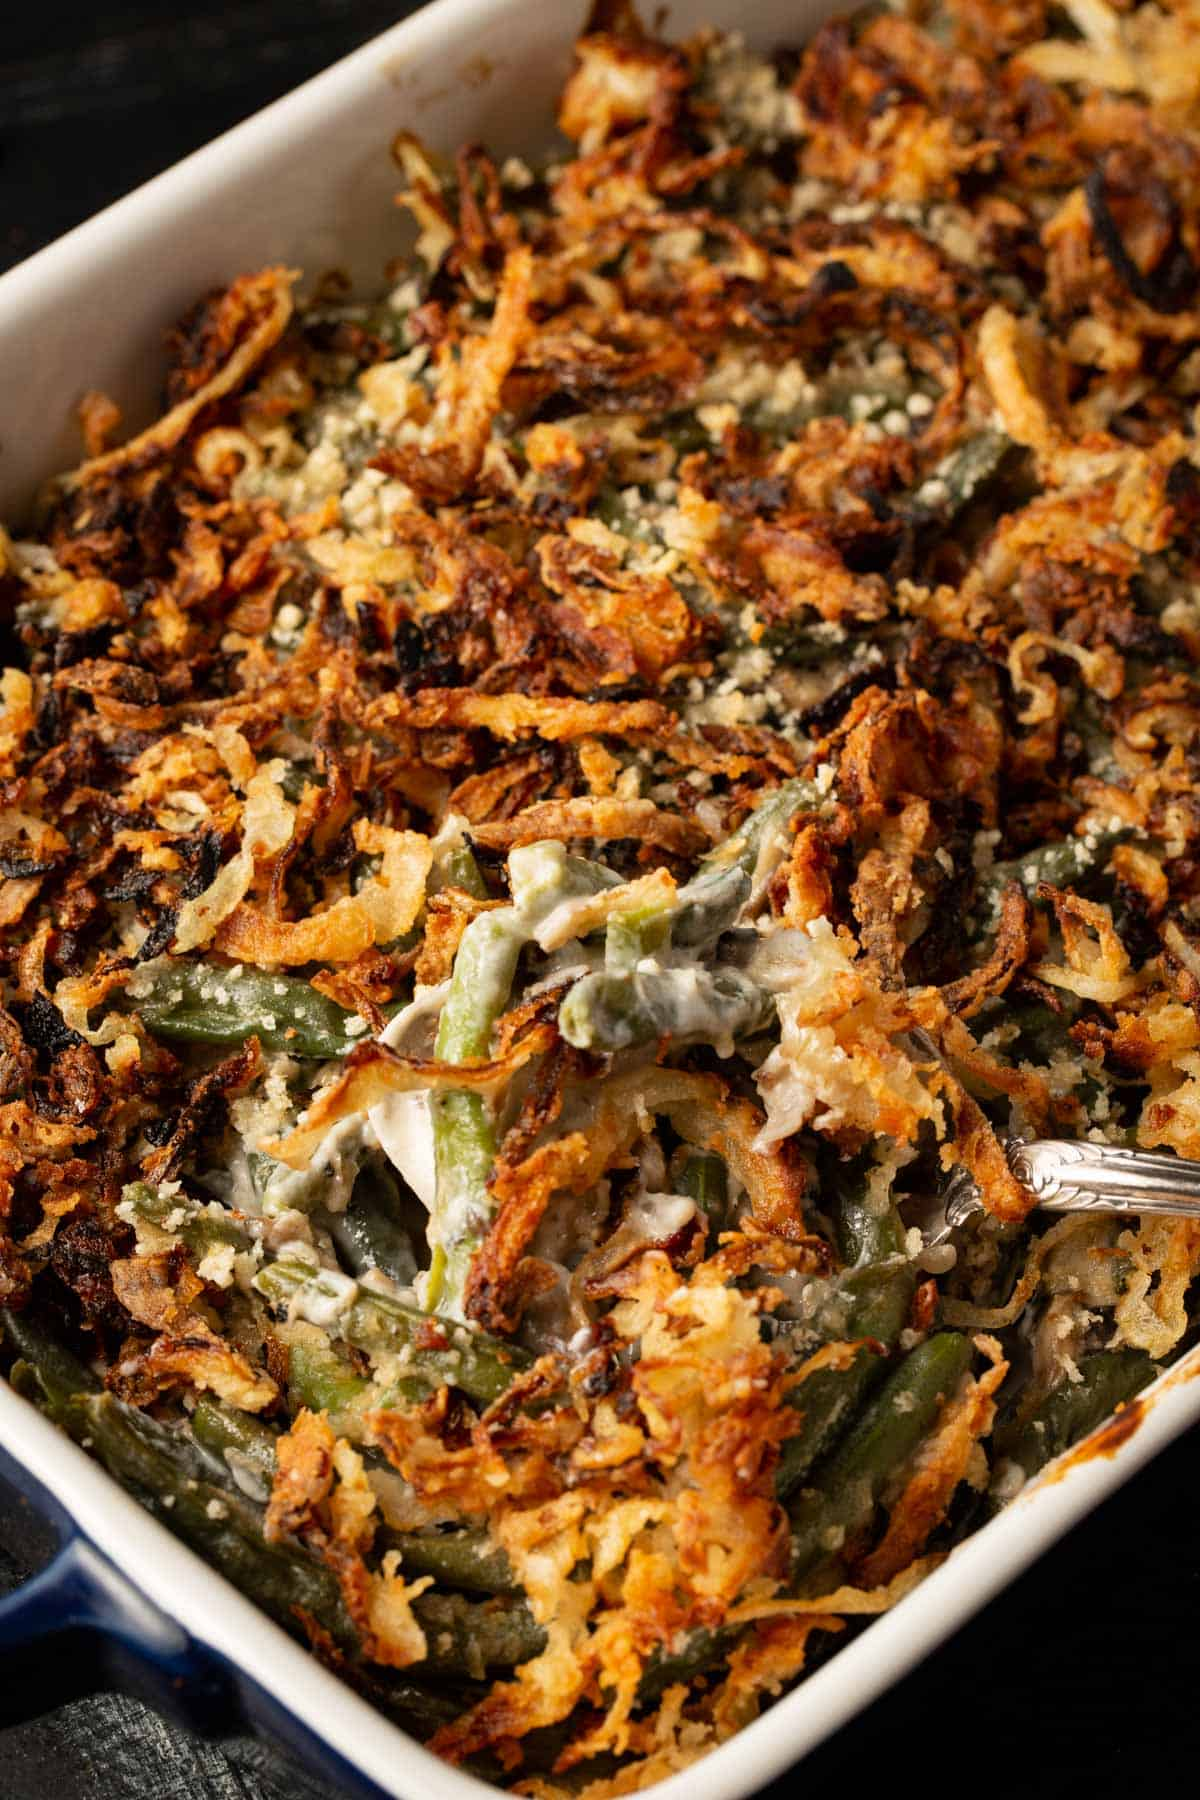 Green bean casserole made with fresh green beans with a serving spoon.